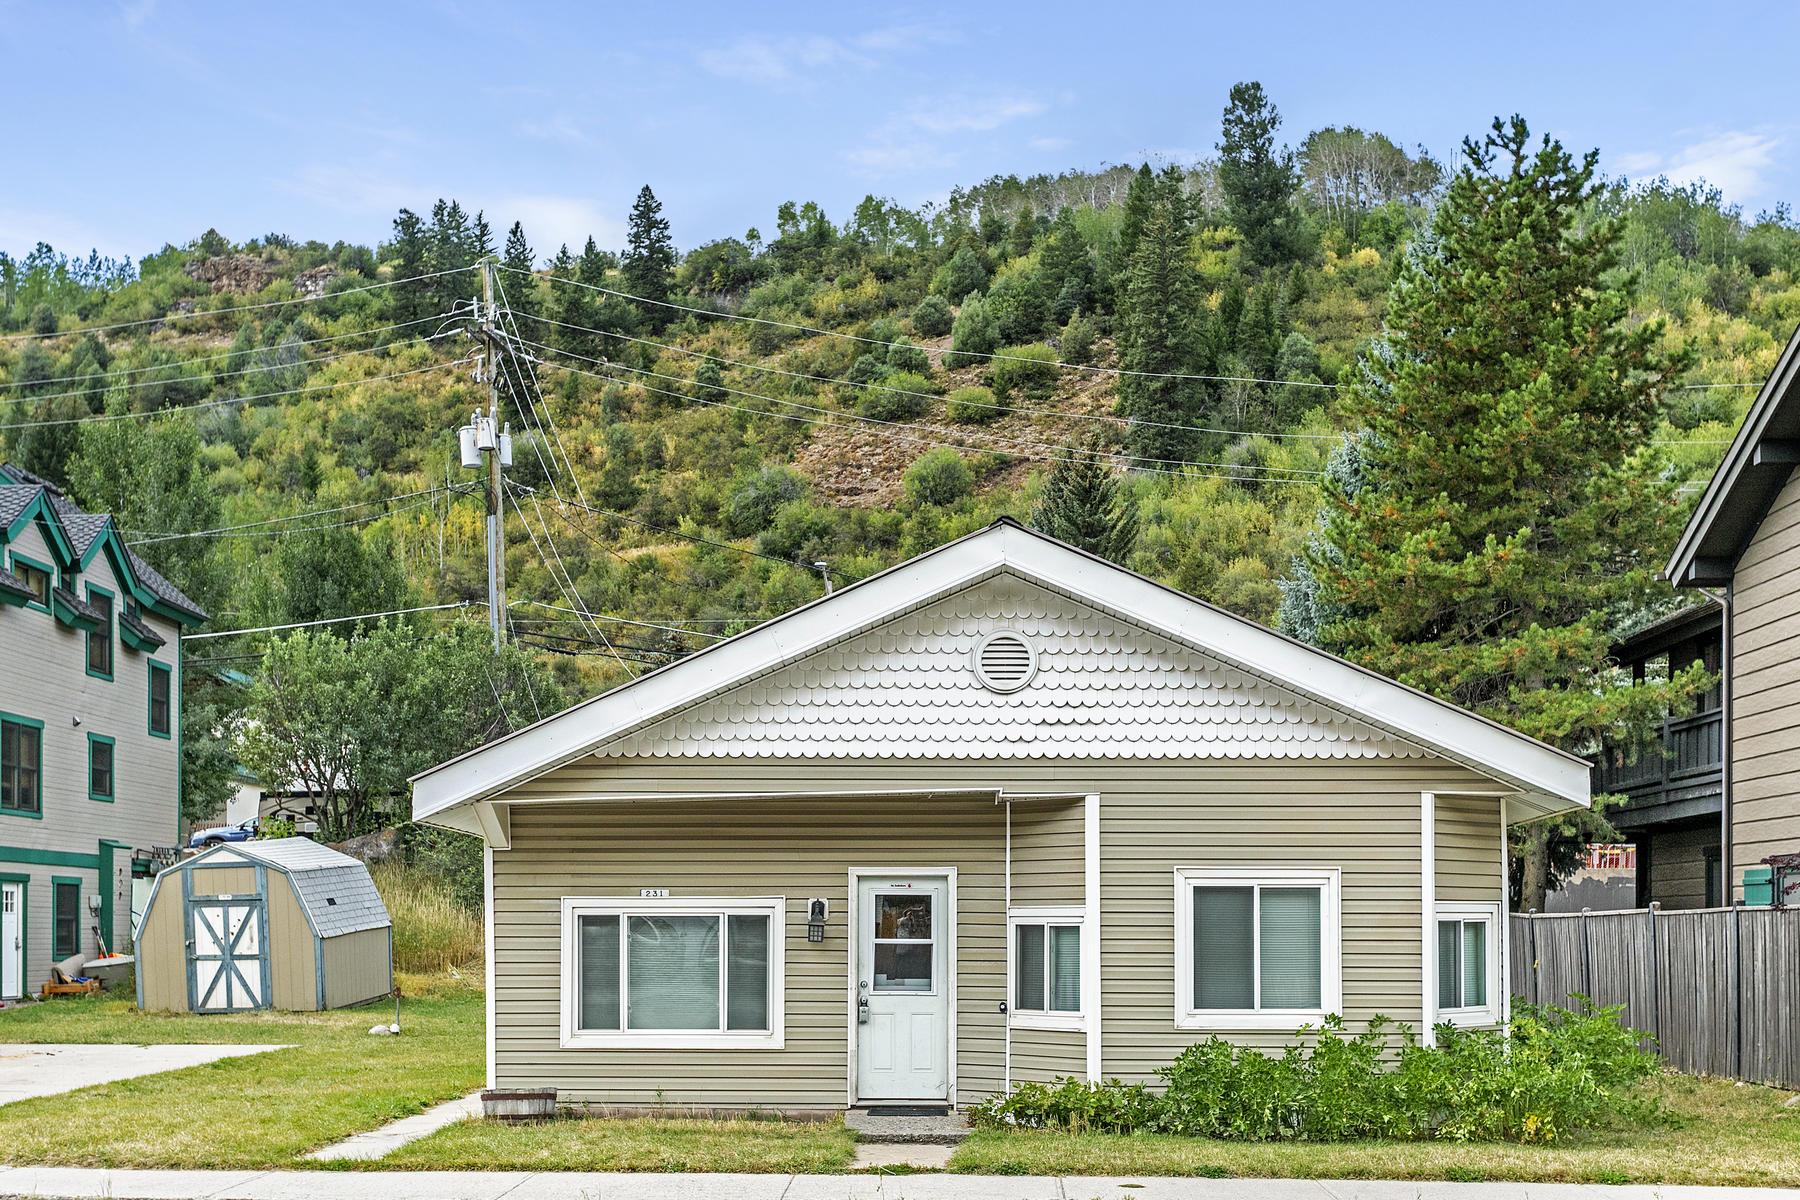 Single Family Homes for Sale at Premium location in the heart of Downtown Minturn 231 Main Street Minturn, Colorado 81645 United States